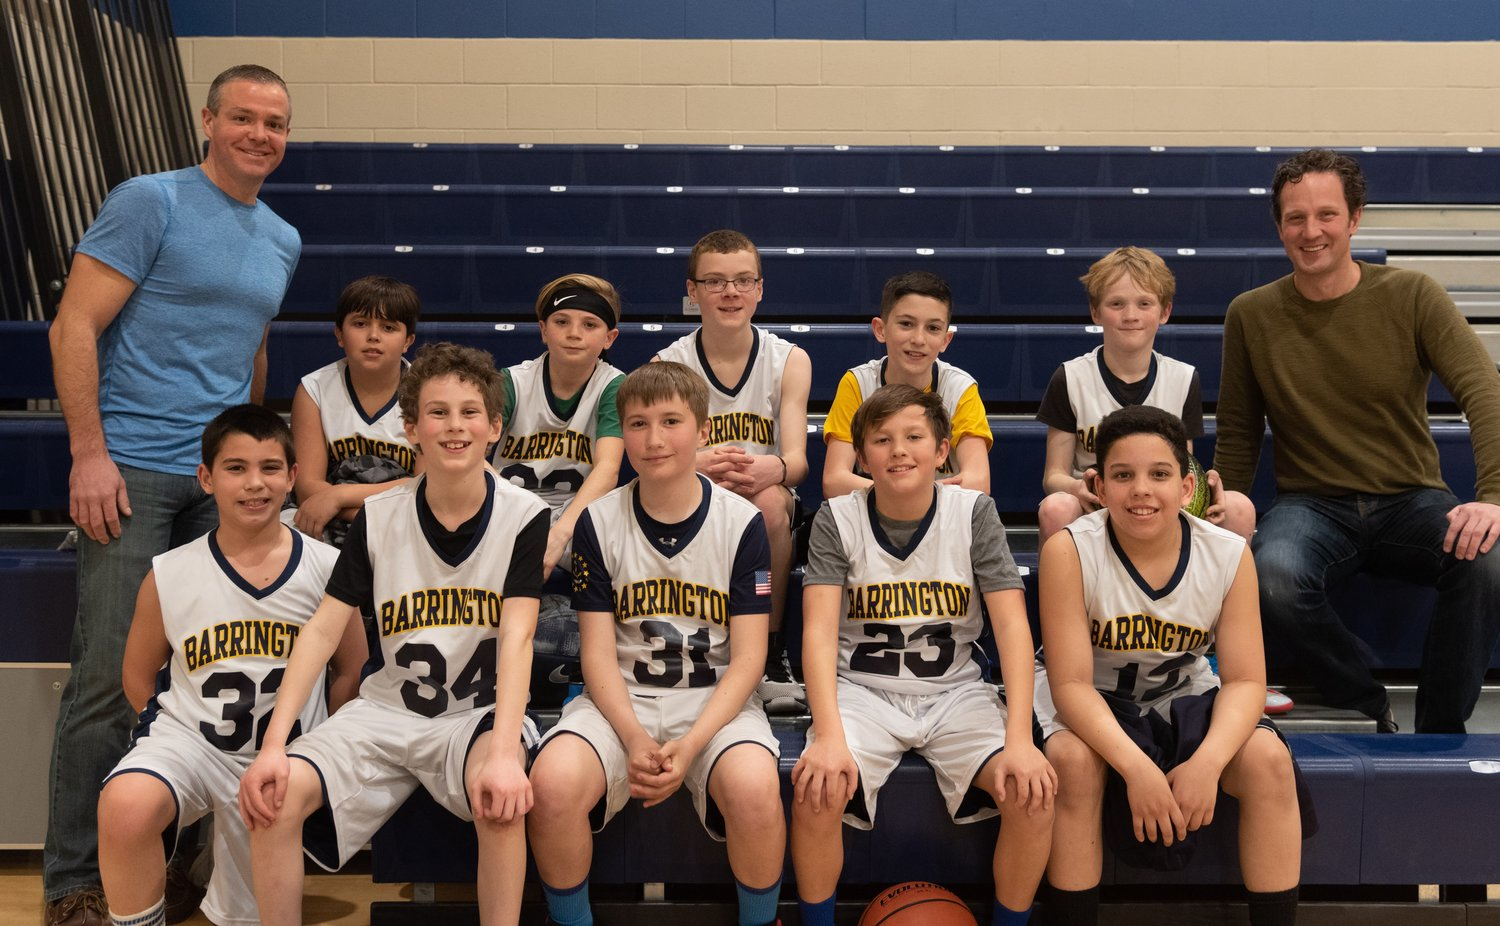 Team Gold poses for a photograph following their 12-2 season. Pictured are (from left to right, front row) Brooks Mello, Zachary Sheinberg, Soren Hoffman, Myles Blount, Sanders Toman, and (back row) head coach Doug Furtado, Sam Tostes, Colin Appleyard, Charlie Furtado, Connor Gillam, Caleb Appleyard, and assistant coach Ben Appleyard.